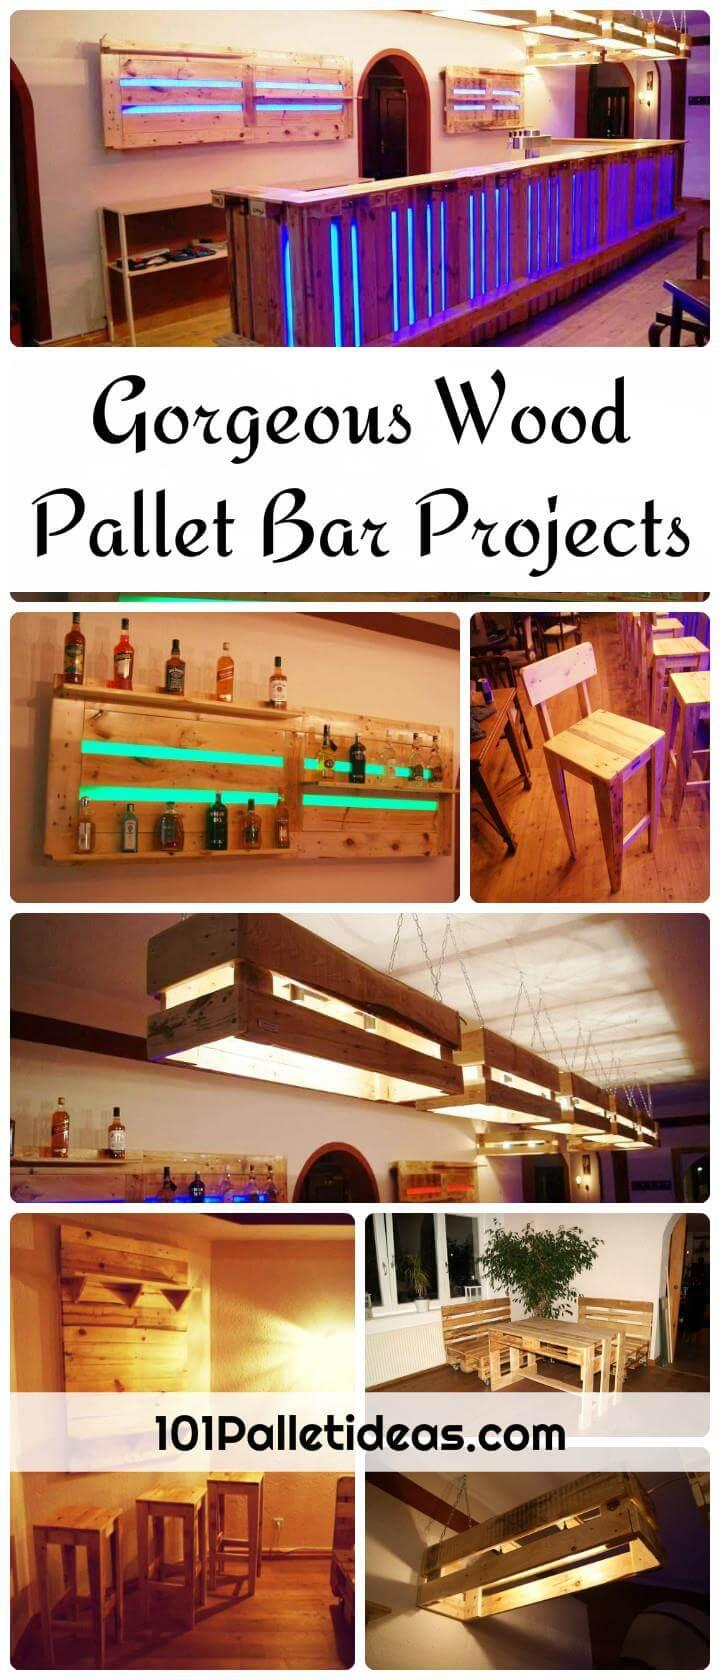 Pallet Bar Projects